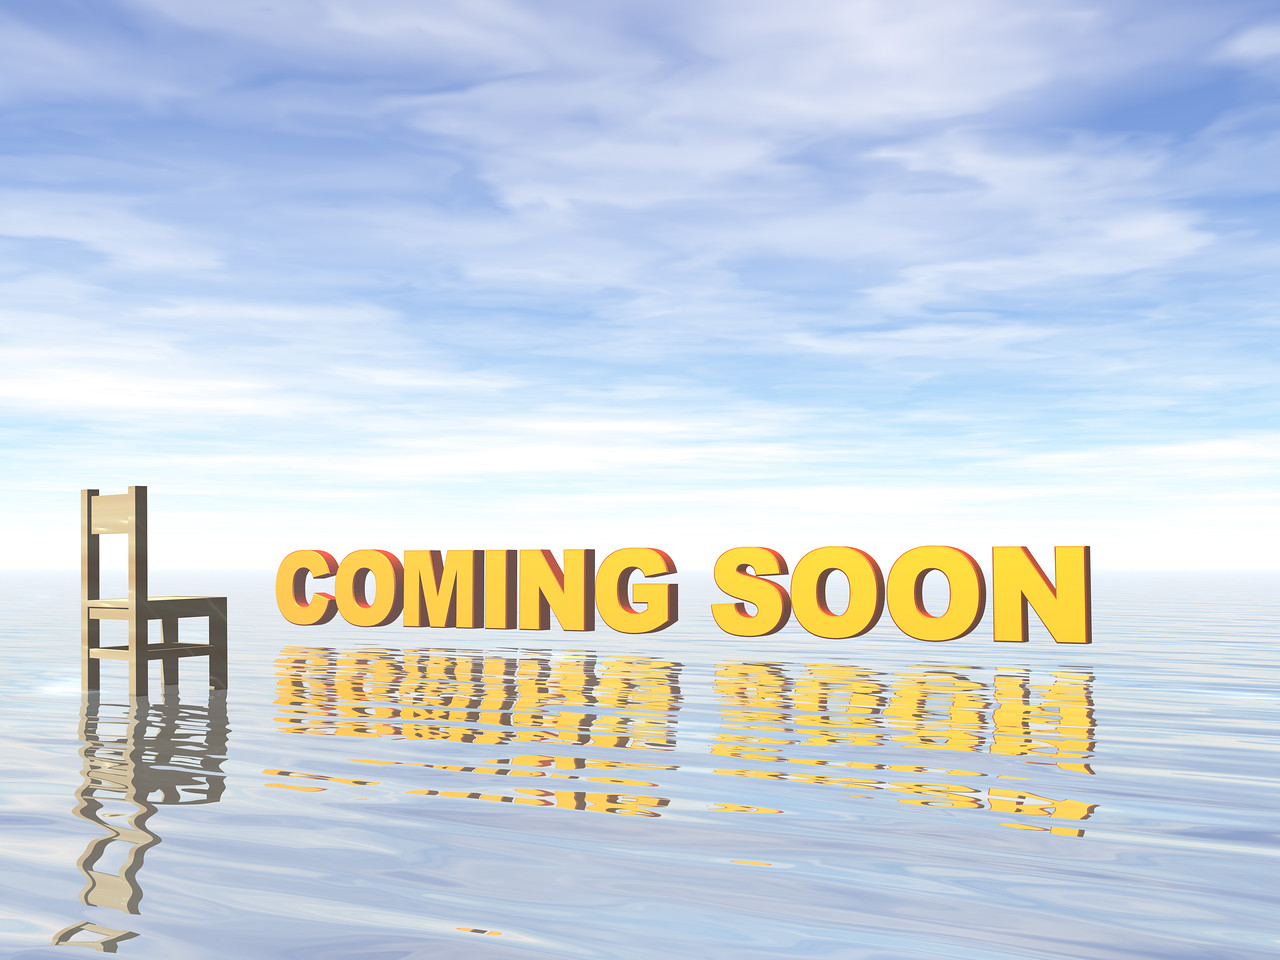 coming soon text and chair at water landscape - 3d illustration